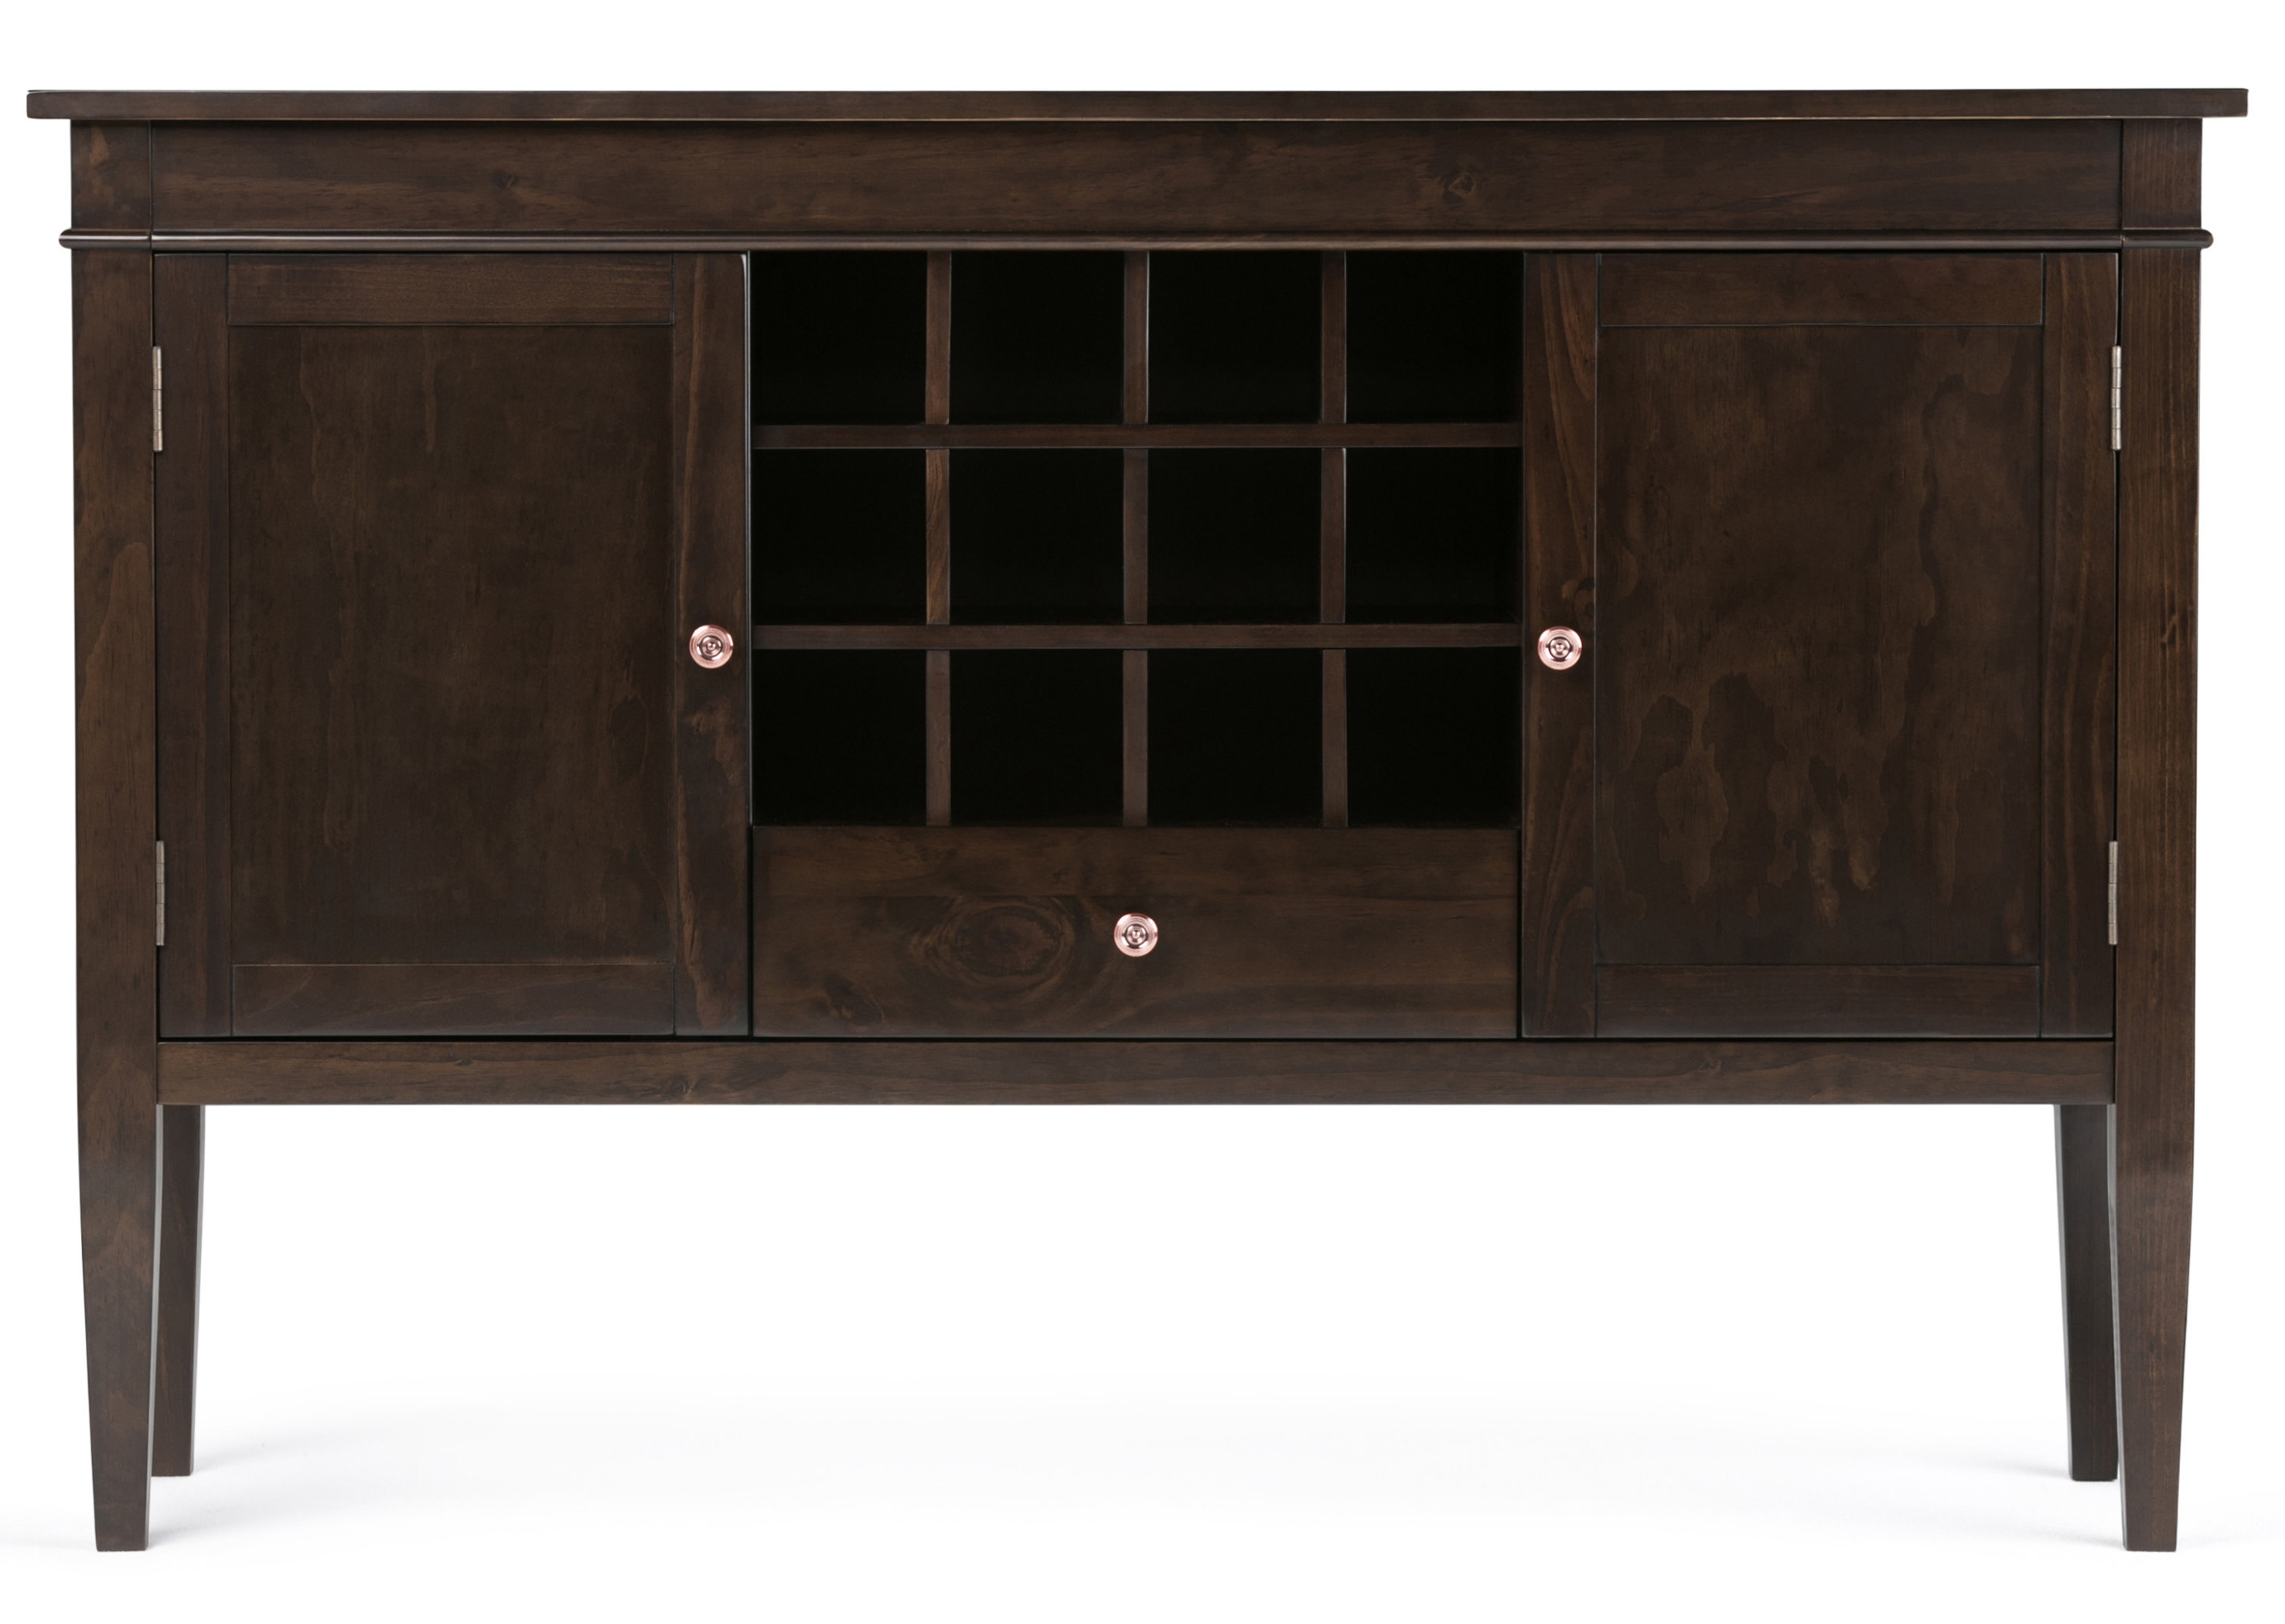 Buffet Table Wine Bottle Storage Equipped Sideboards Within Cappuccino Finished Buffets (View 16 of 20)